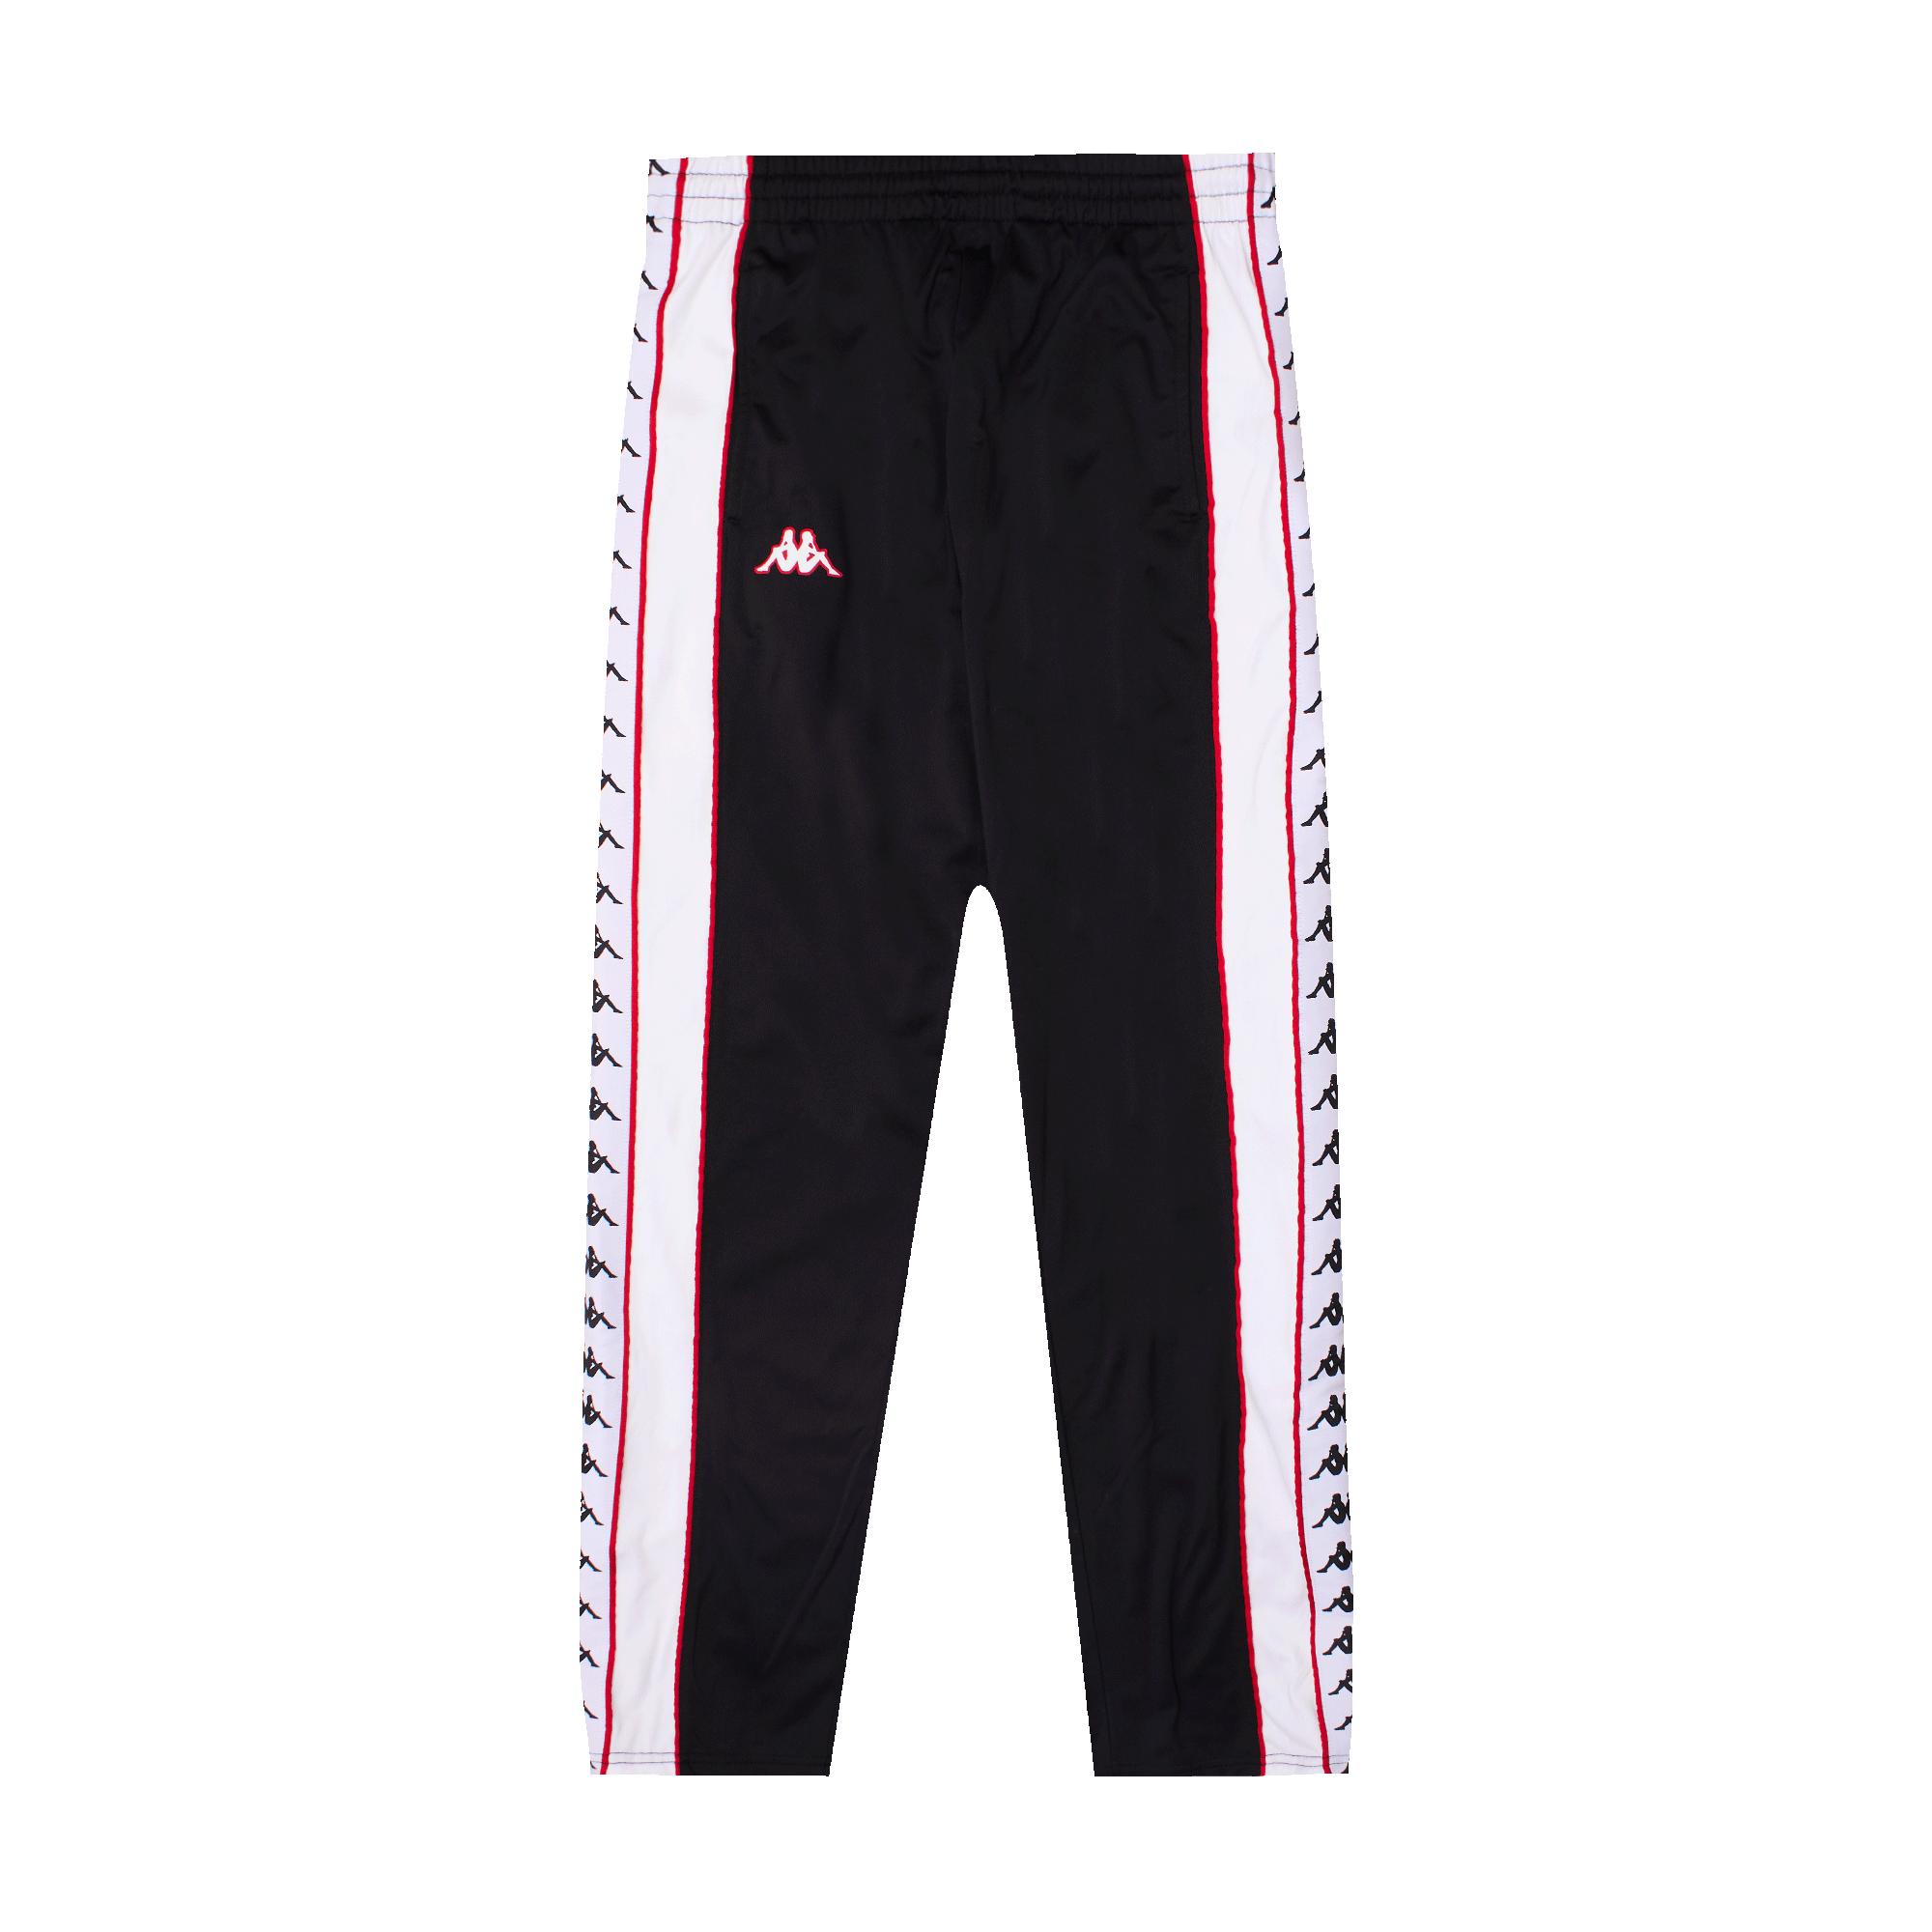 nuovi stili b7de0 13547 Kappa 222 Banda Big Bay black / white / red - Pantaloni | Holypopstore.com